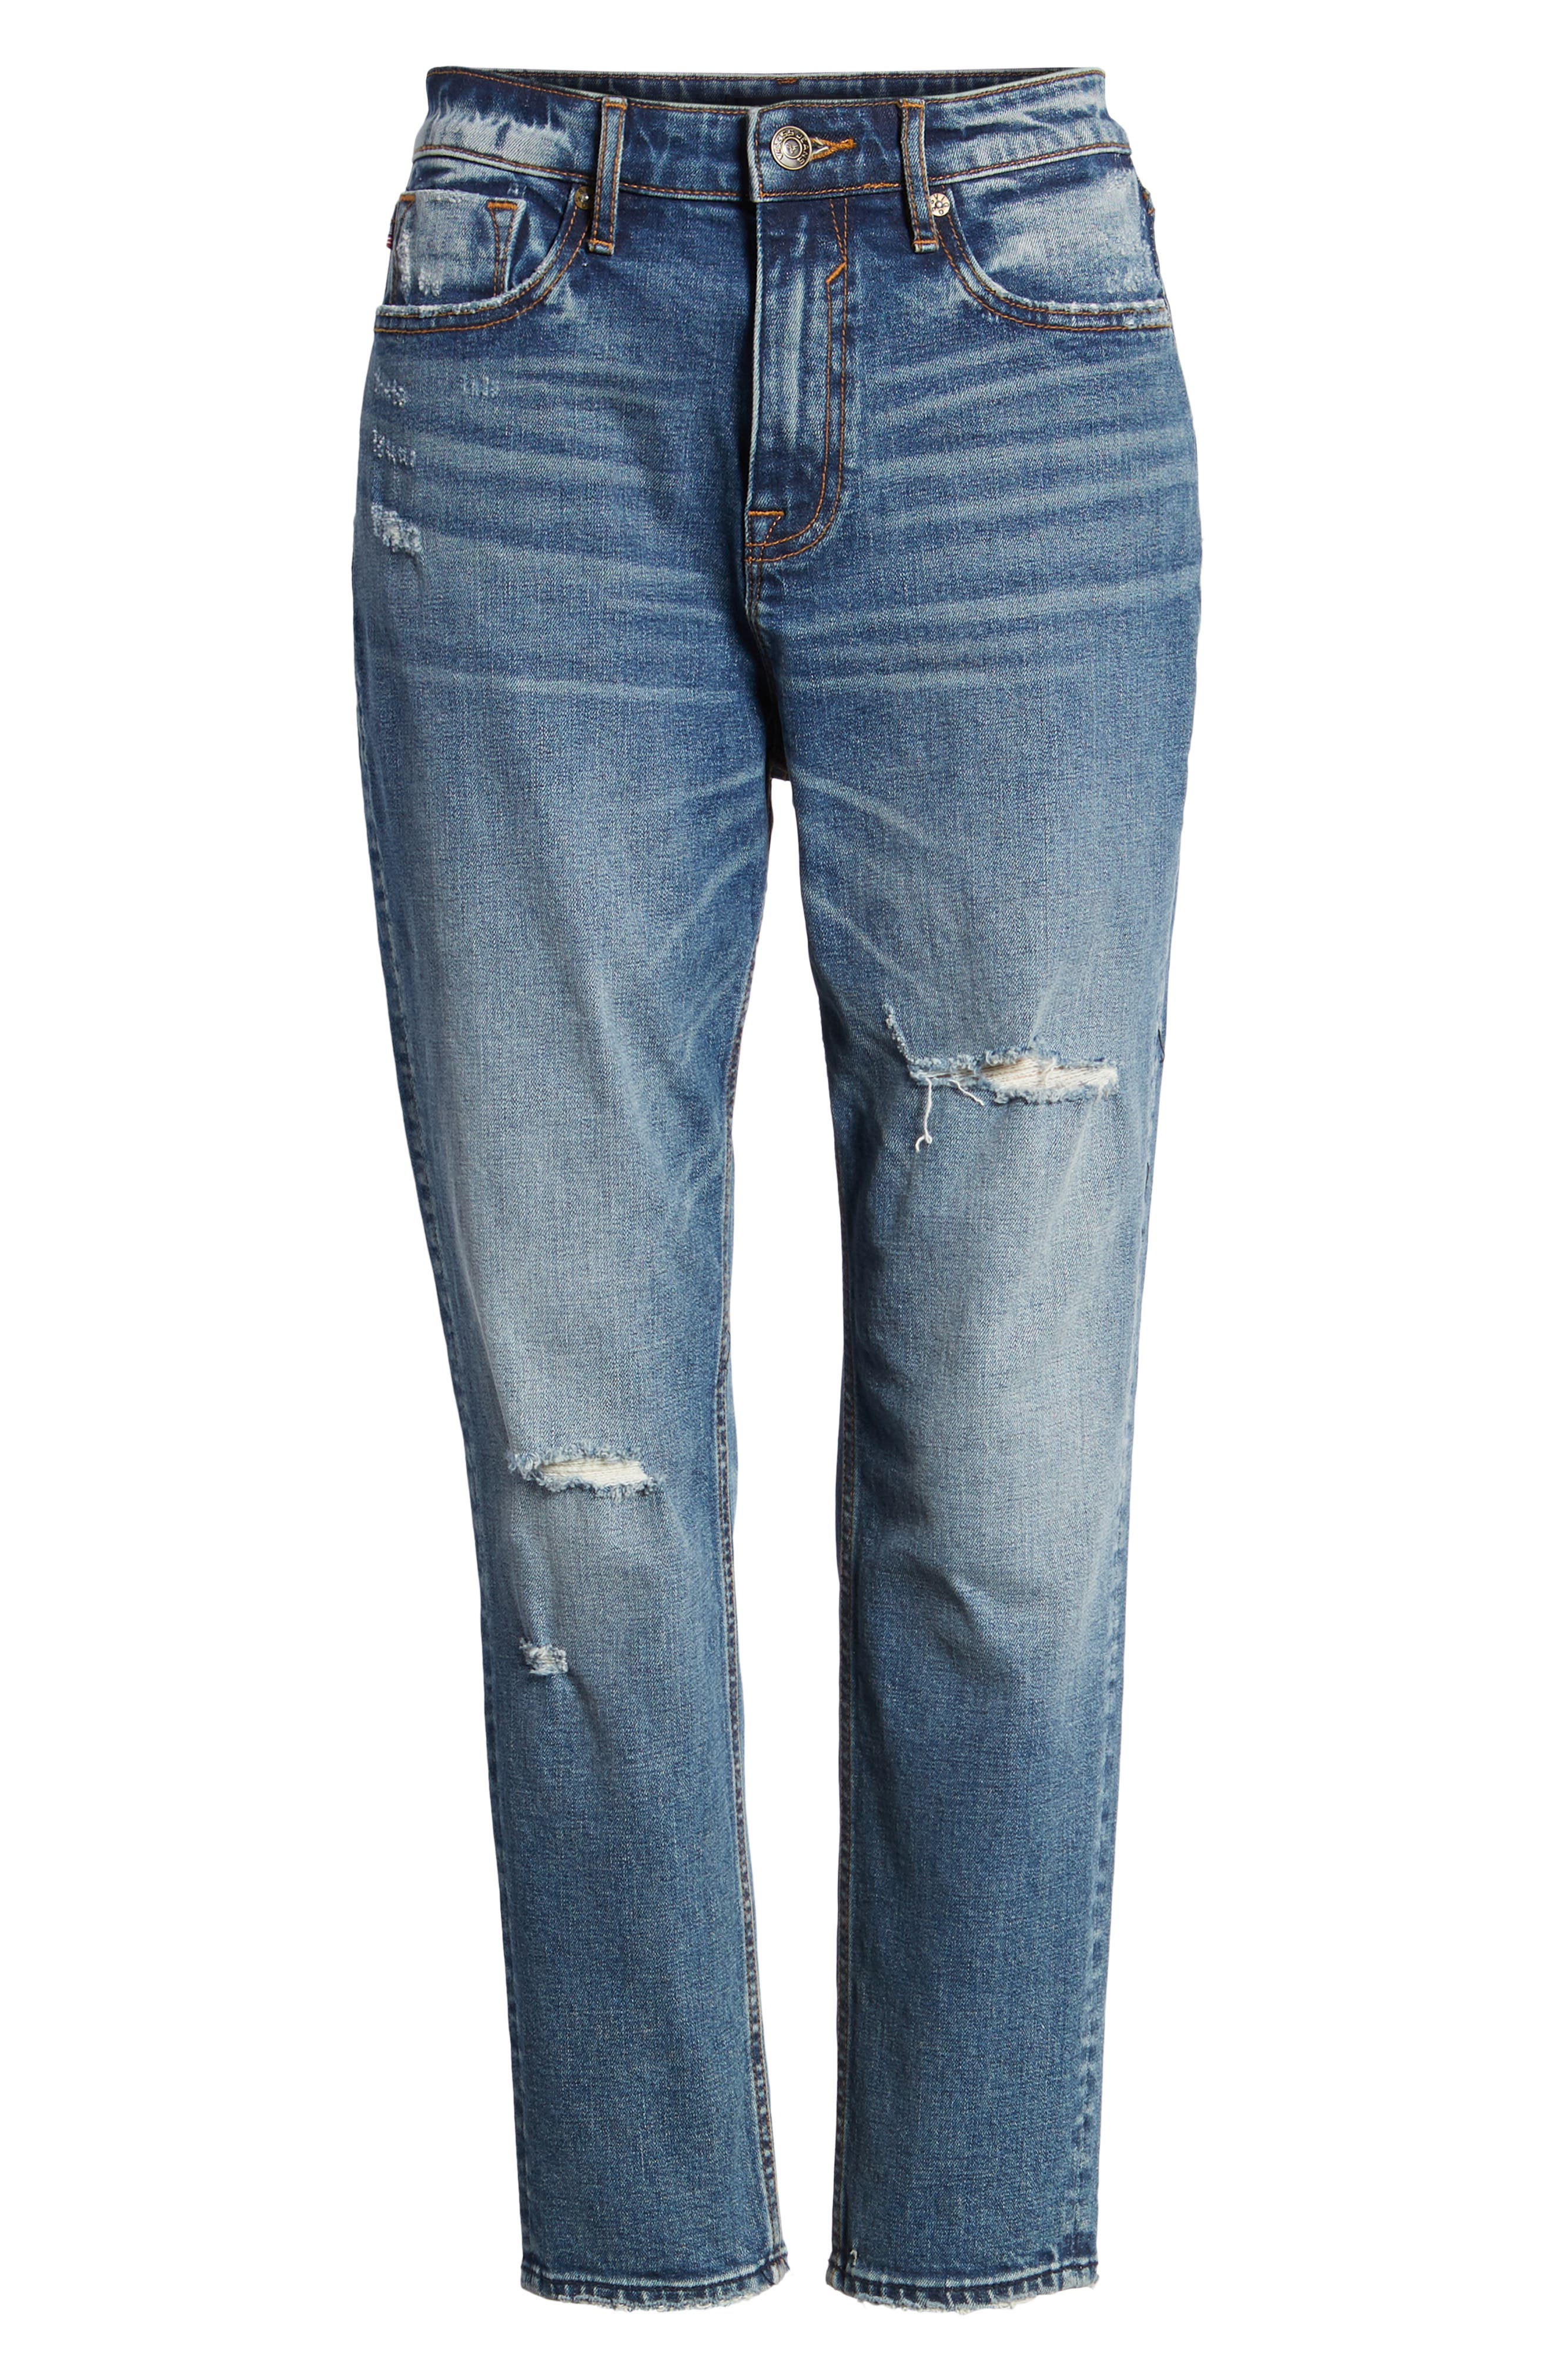 Friday Distressed Tapered Boyfriend Jeans,                             Alternate thumbnail 7, color,                             Medium Wash